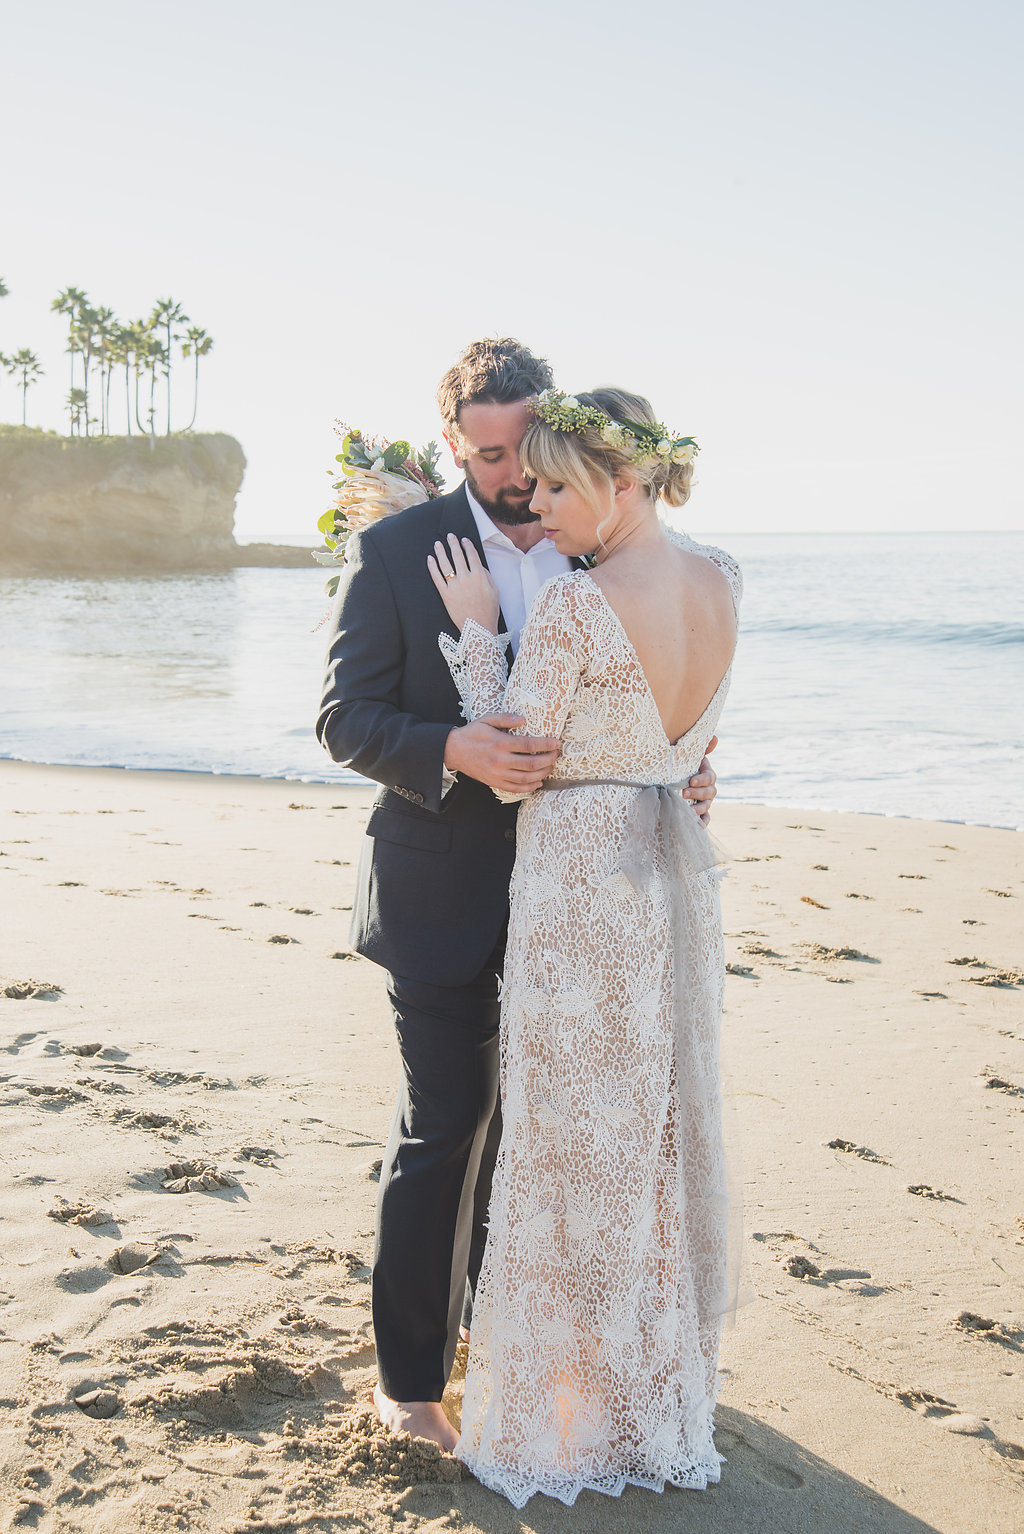 CAIT + TIO | SUNRISE ELOPEMENT  LAGUNA CALIFORNIA